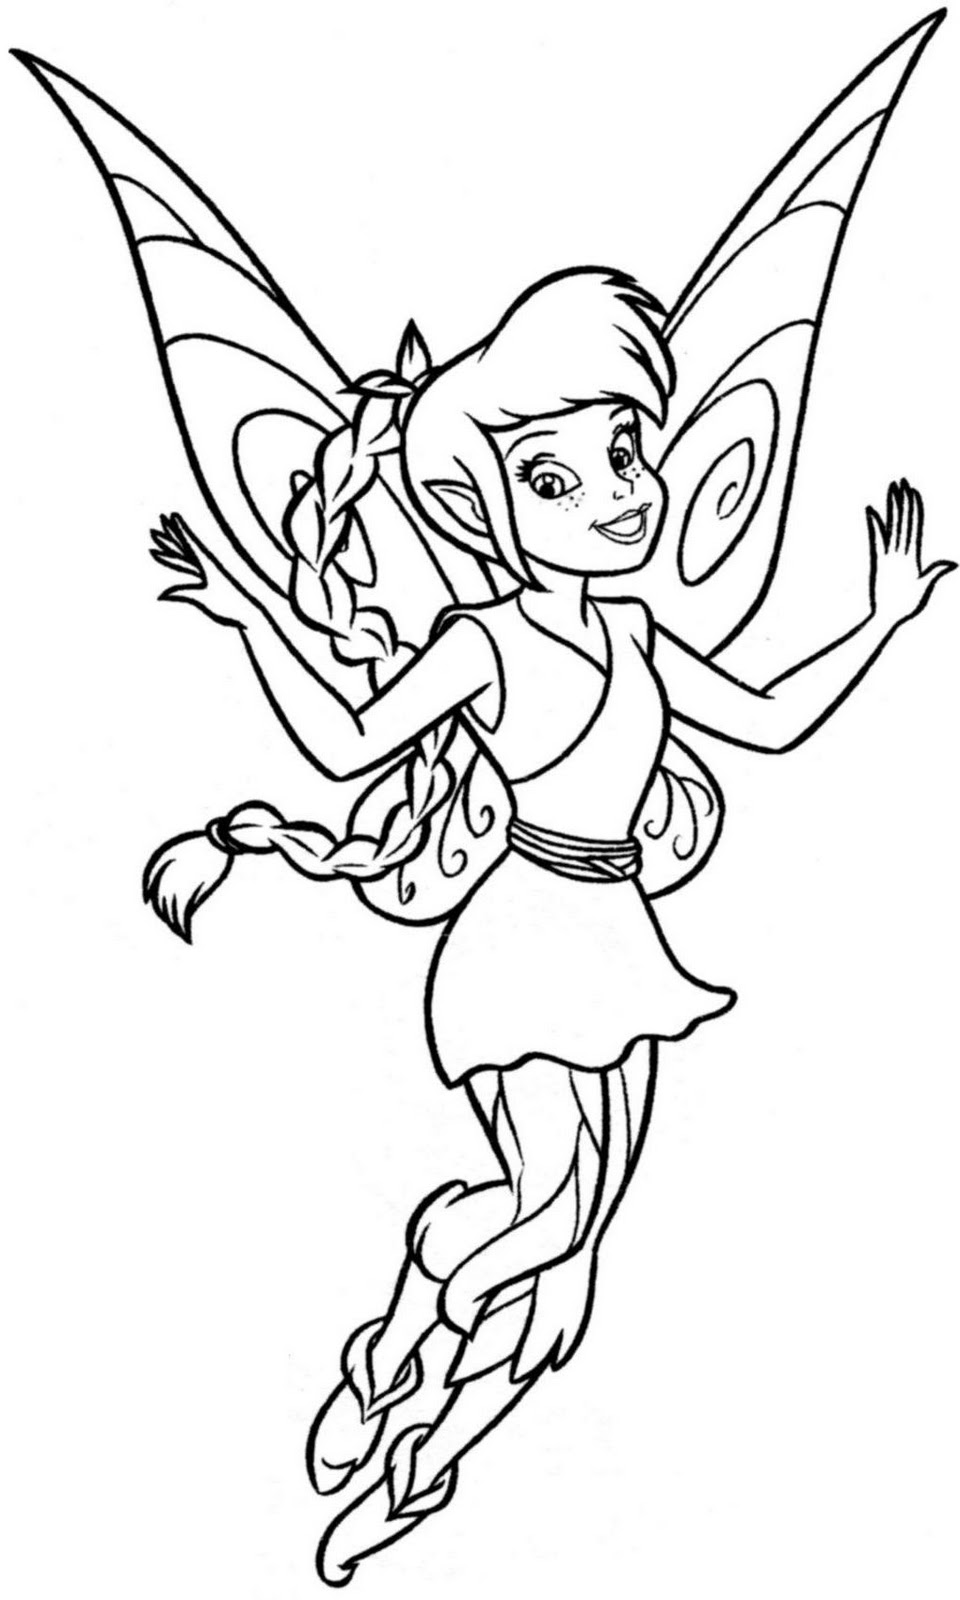 tinkerbell fawn sabrina coloring pages - photo#15